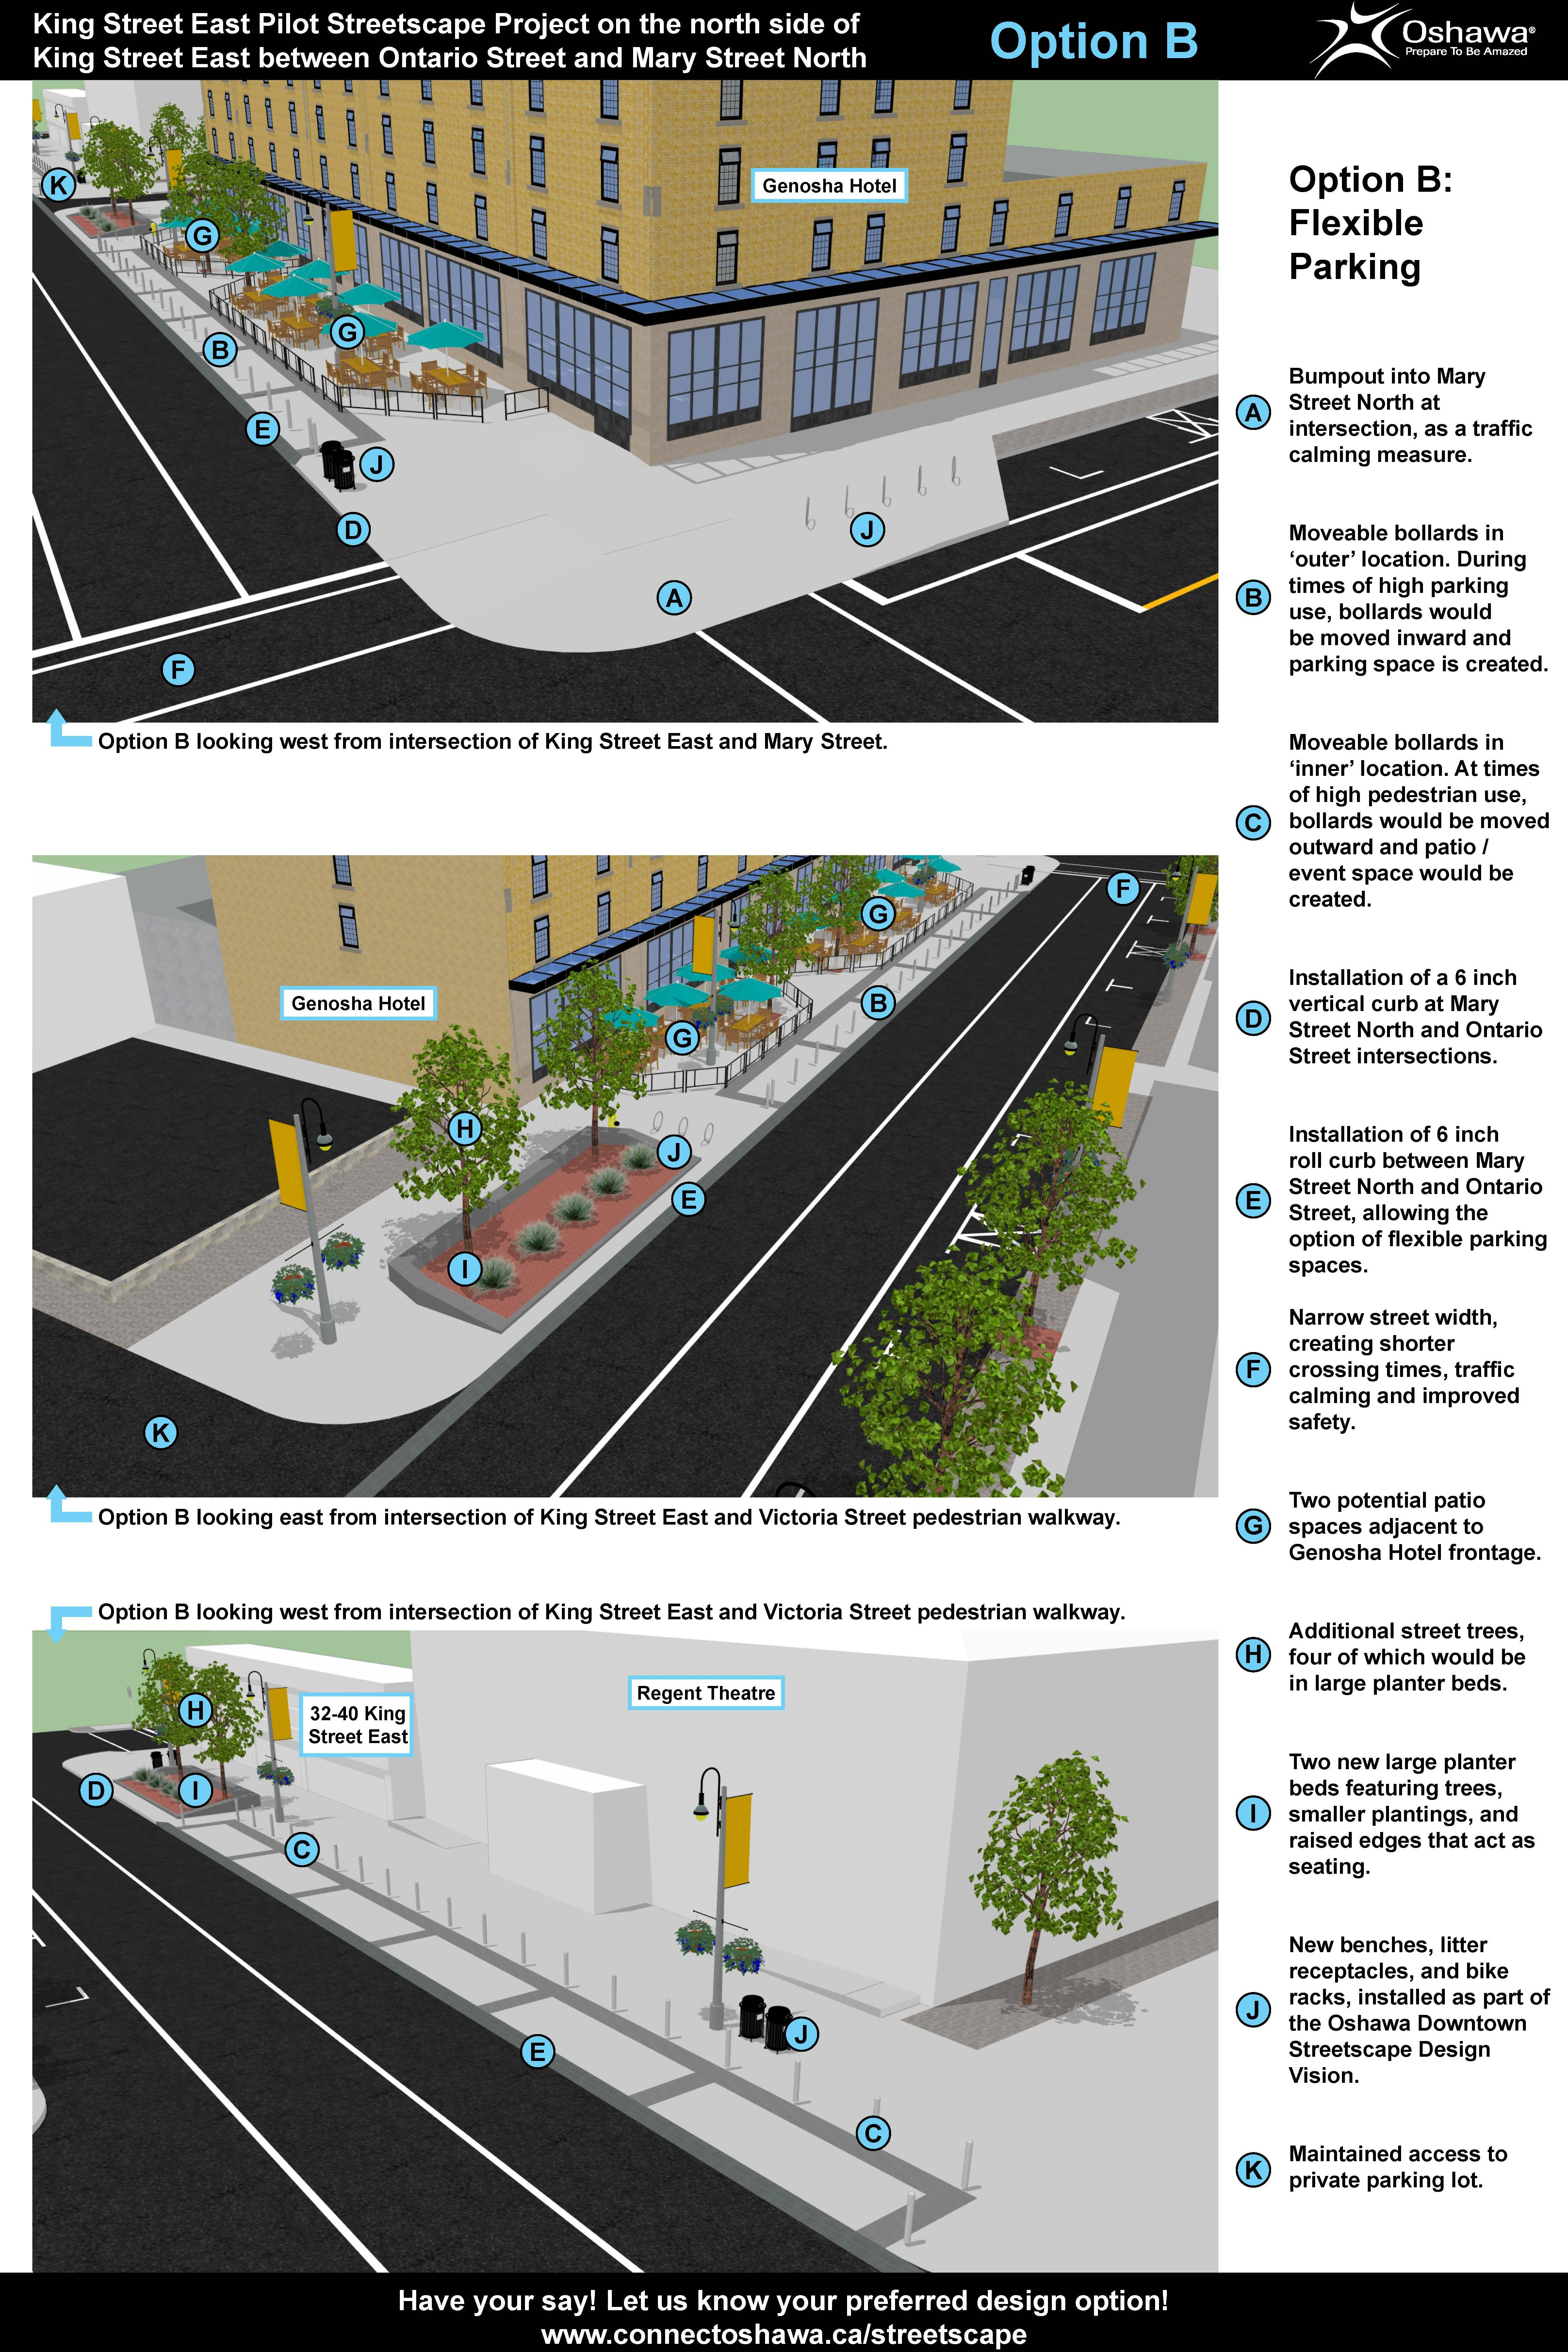 Option B (Flexible 12 Parking): King Street East Pilot streetscape project